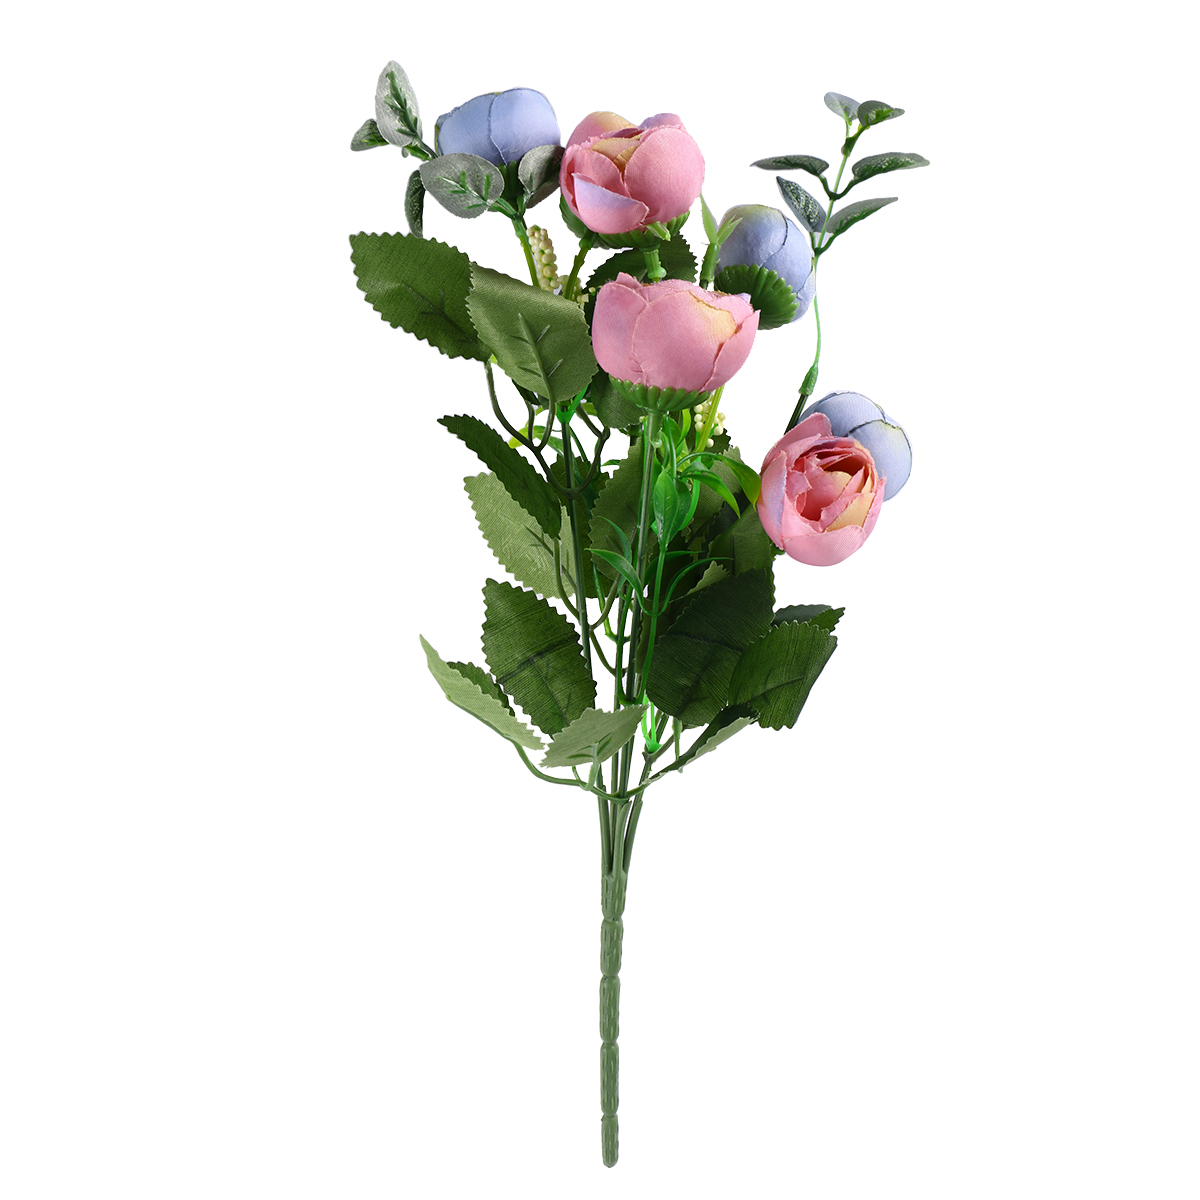 New Artificial Rose Single Stem Flowers Fake Plants Simulation